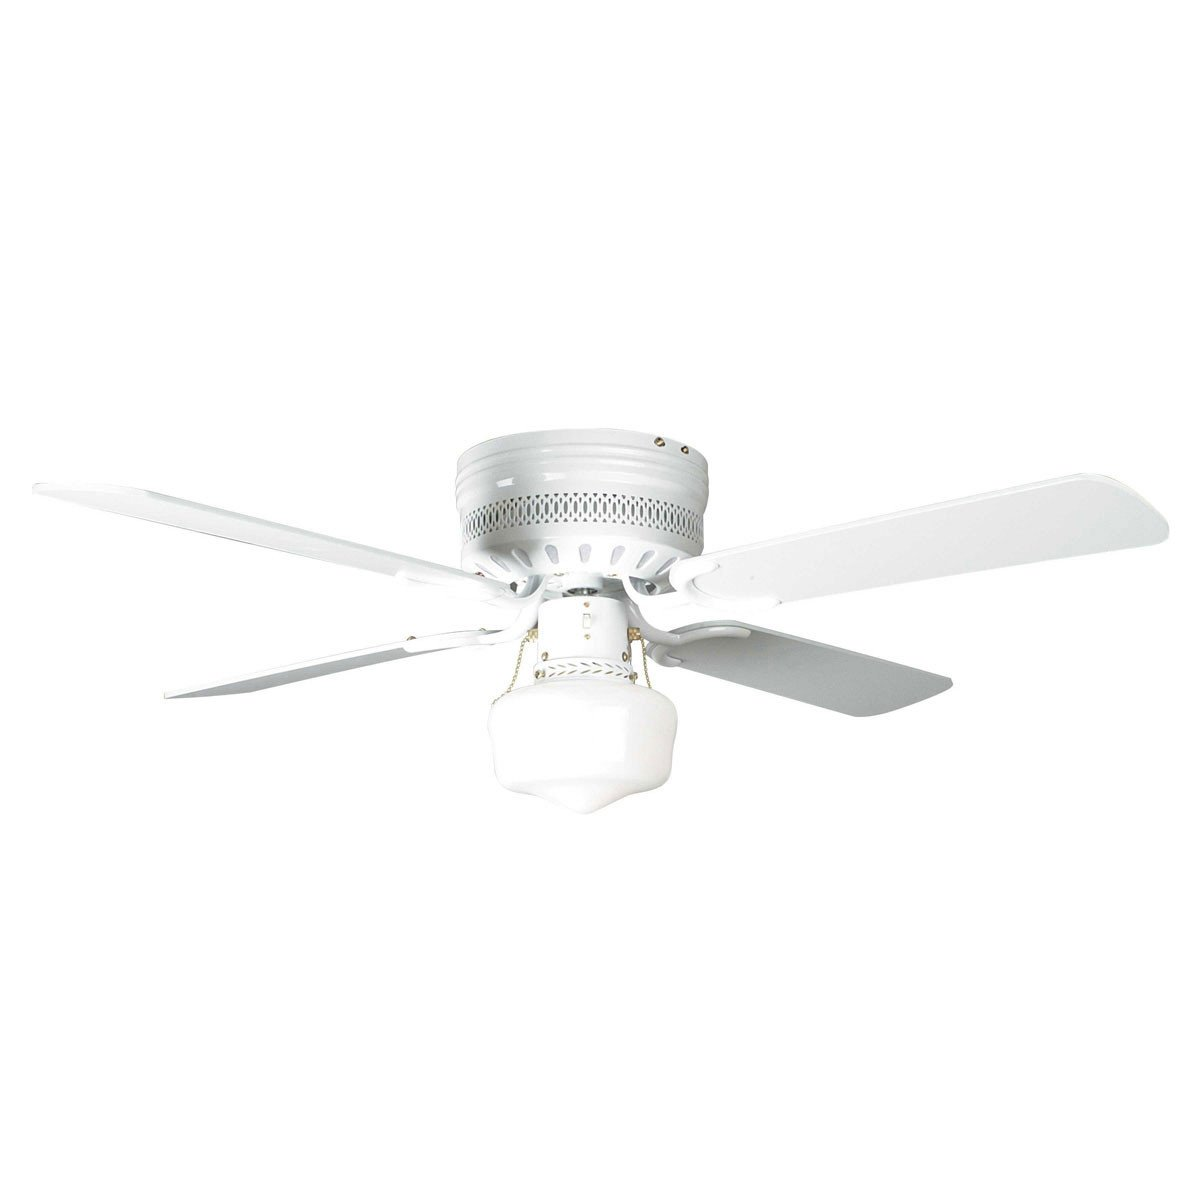 "Concord Fans 42"" Small White Low Profile Hugger Ceiling Fan with Light Kit"